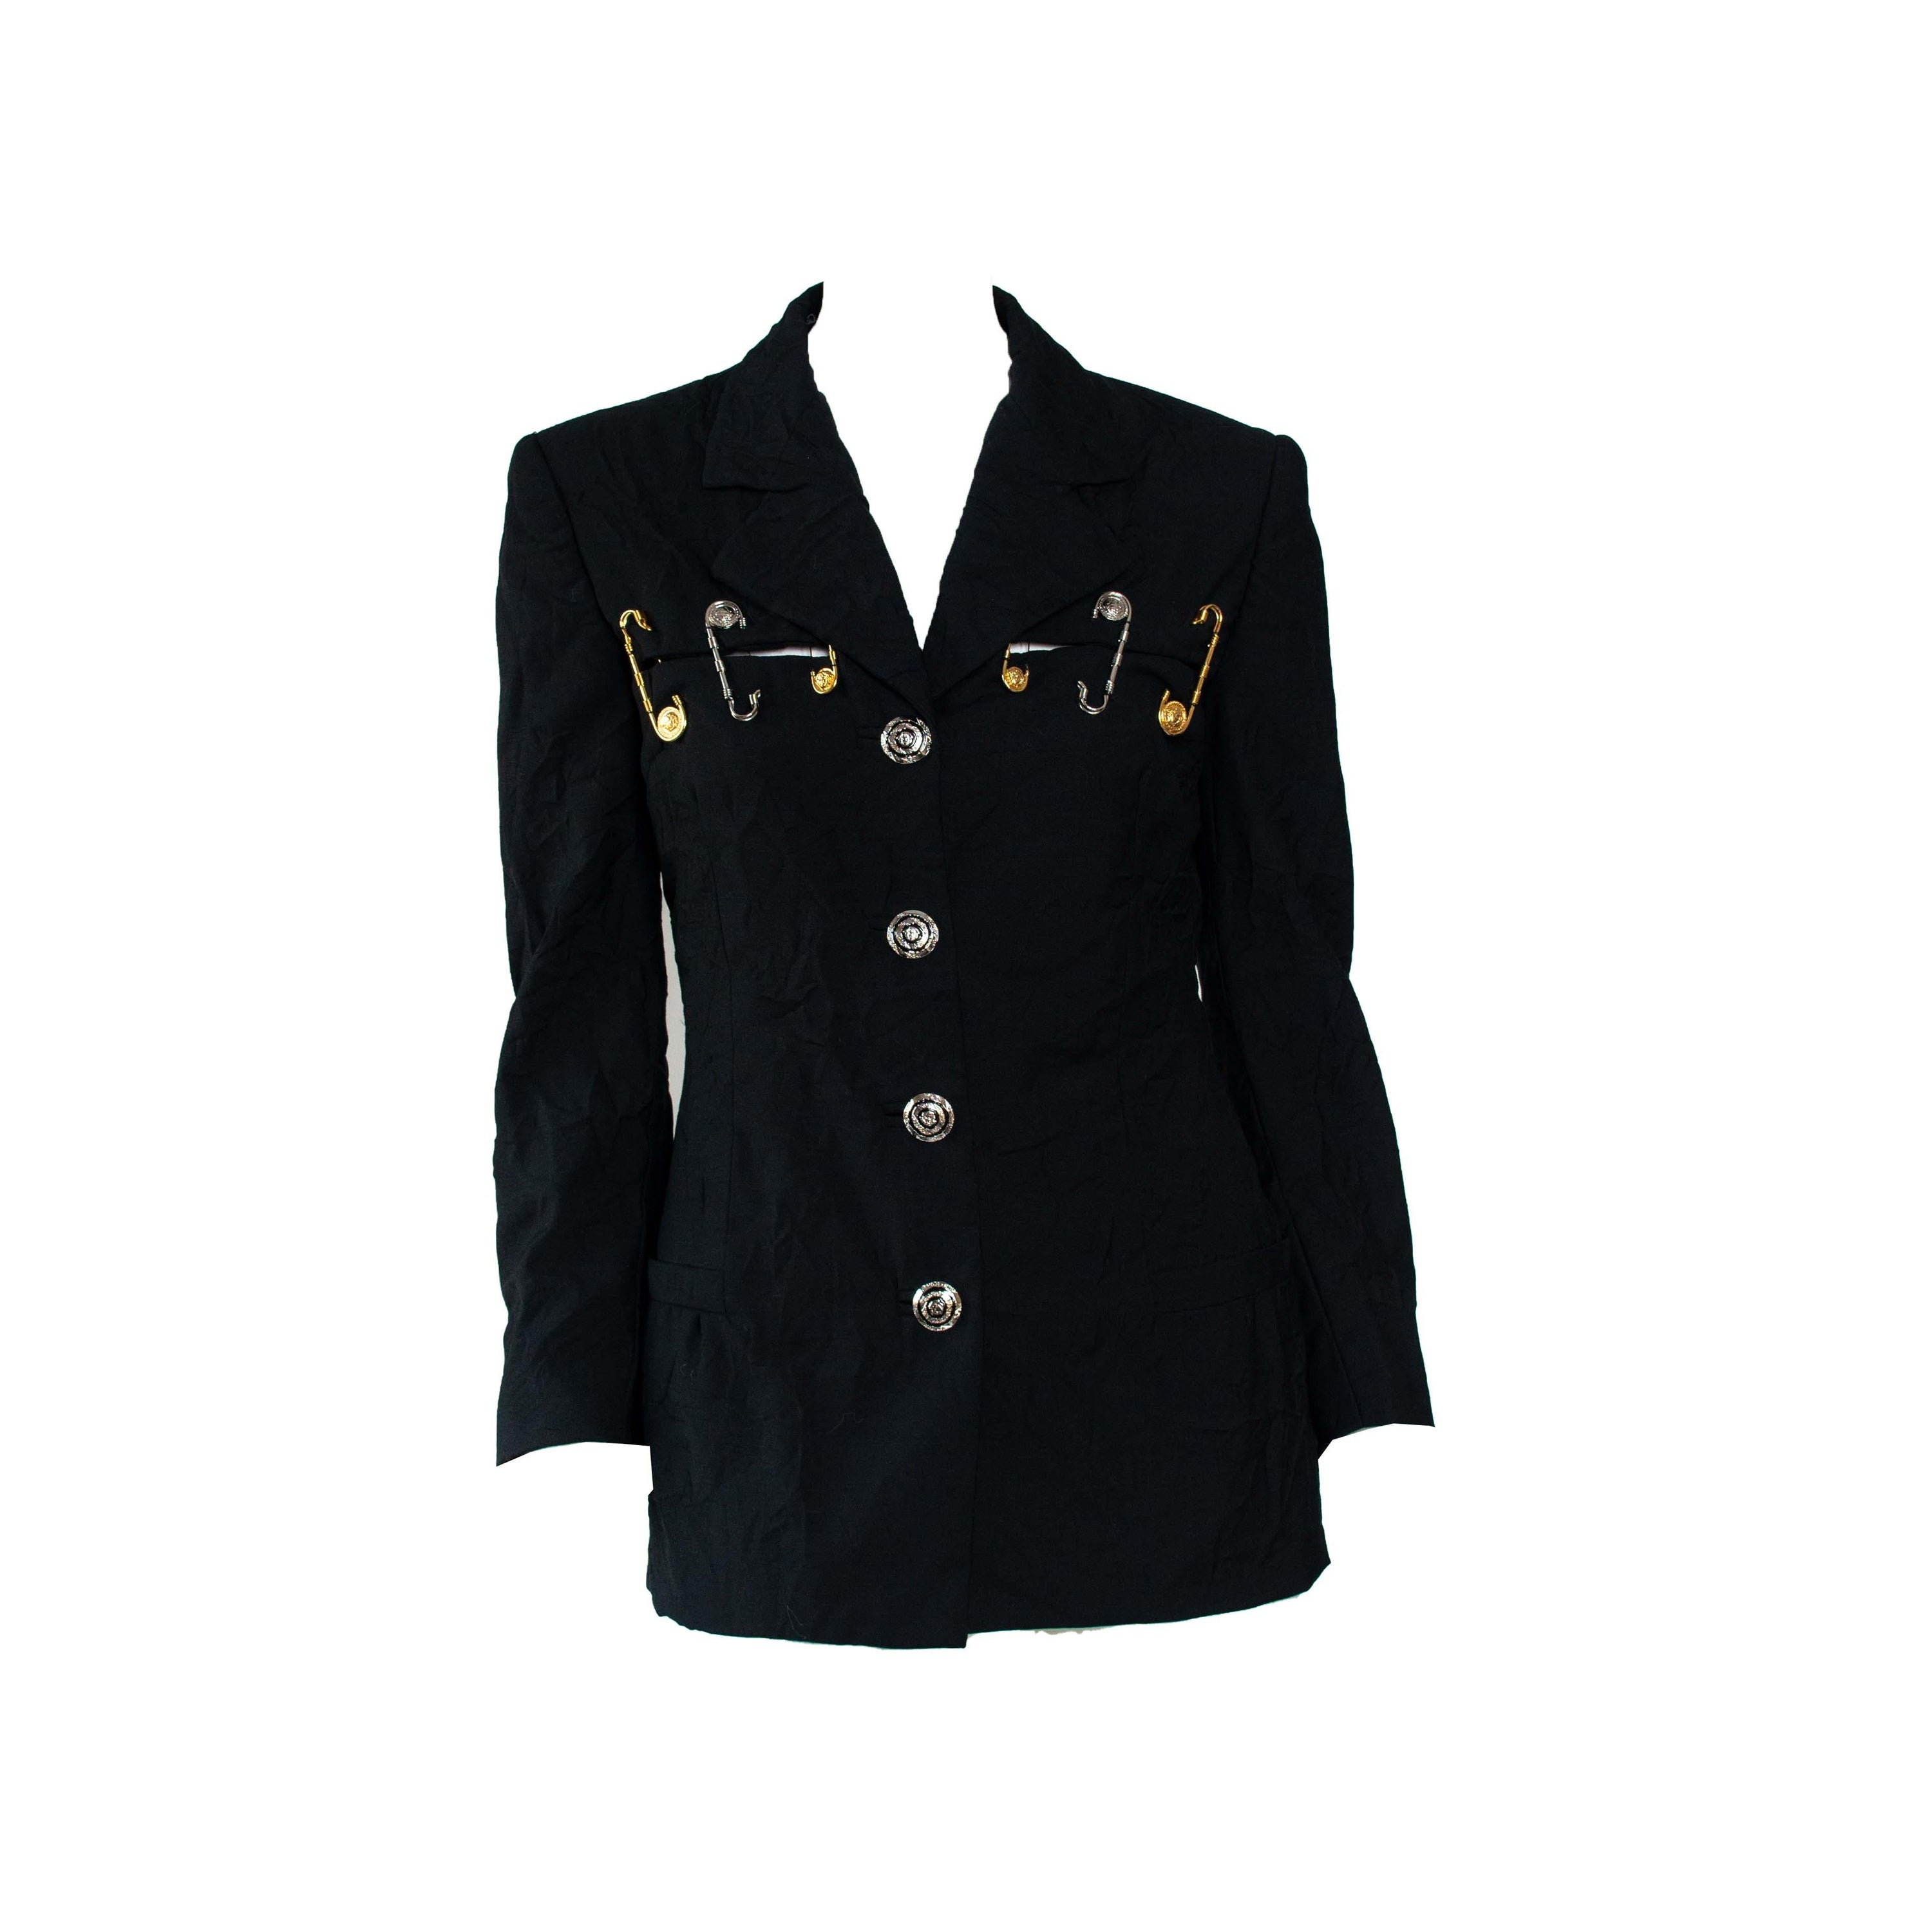 S/S 1994 Gianni Versace Couture Medusa Safety Pin Blazer Runway